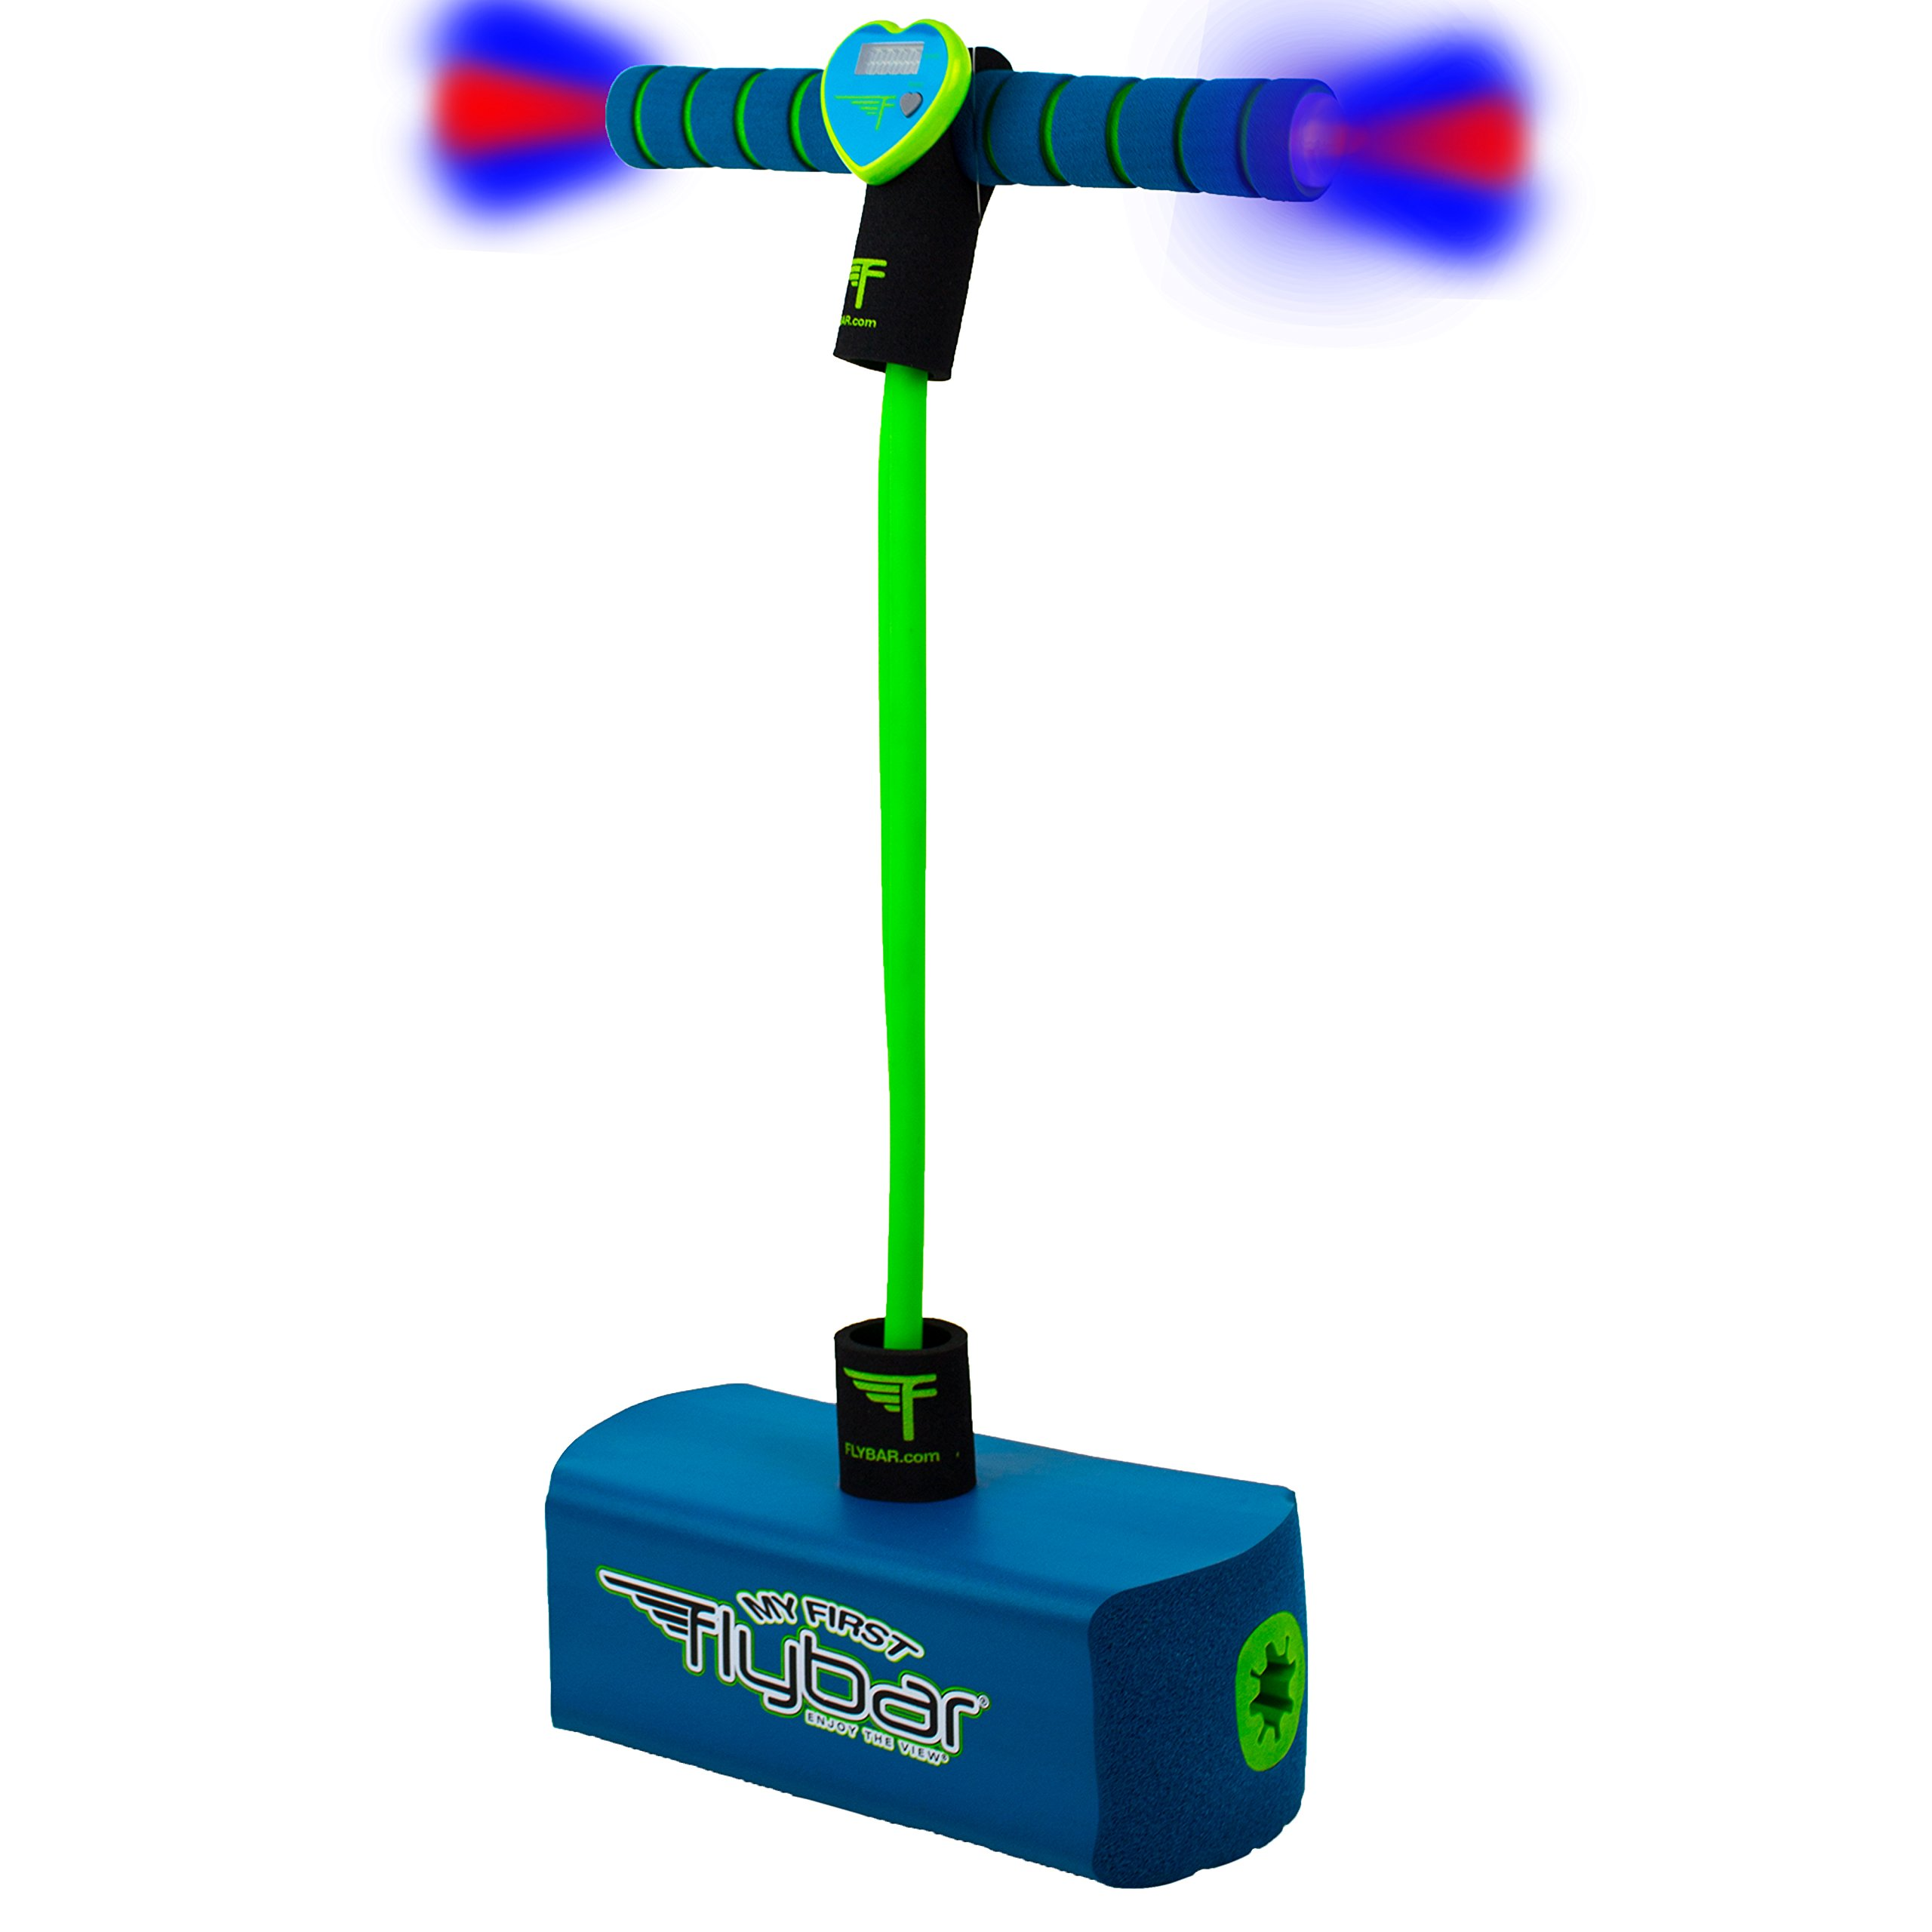 Flybar My First Foam Pogo Jumper for Kids Fun and Safe Pogo Stick for Toddlers, Durable Foam and Bungee Jumper for Ages 3 and up, Supports up to 250lbs (Blue LED)